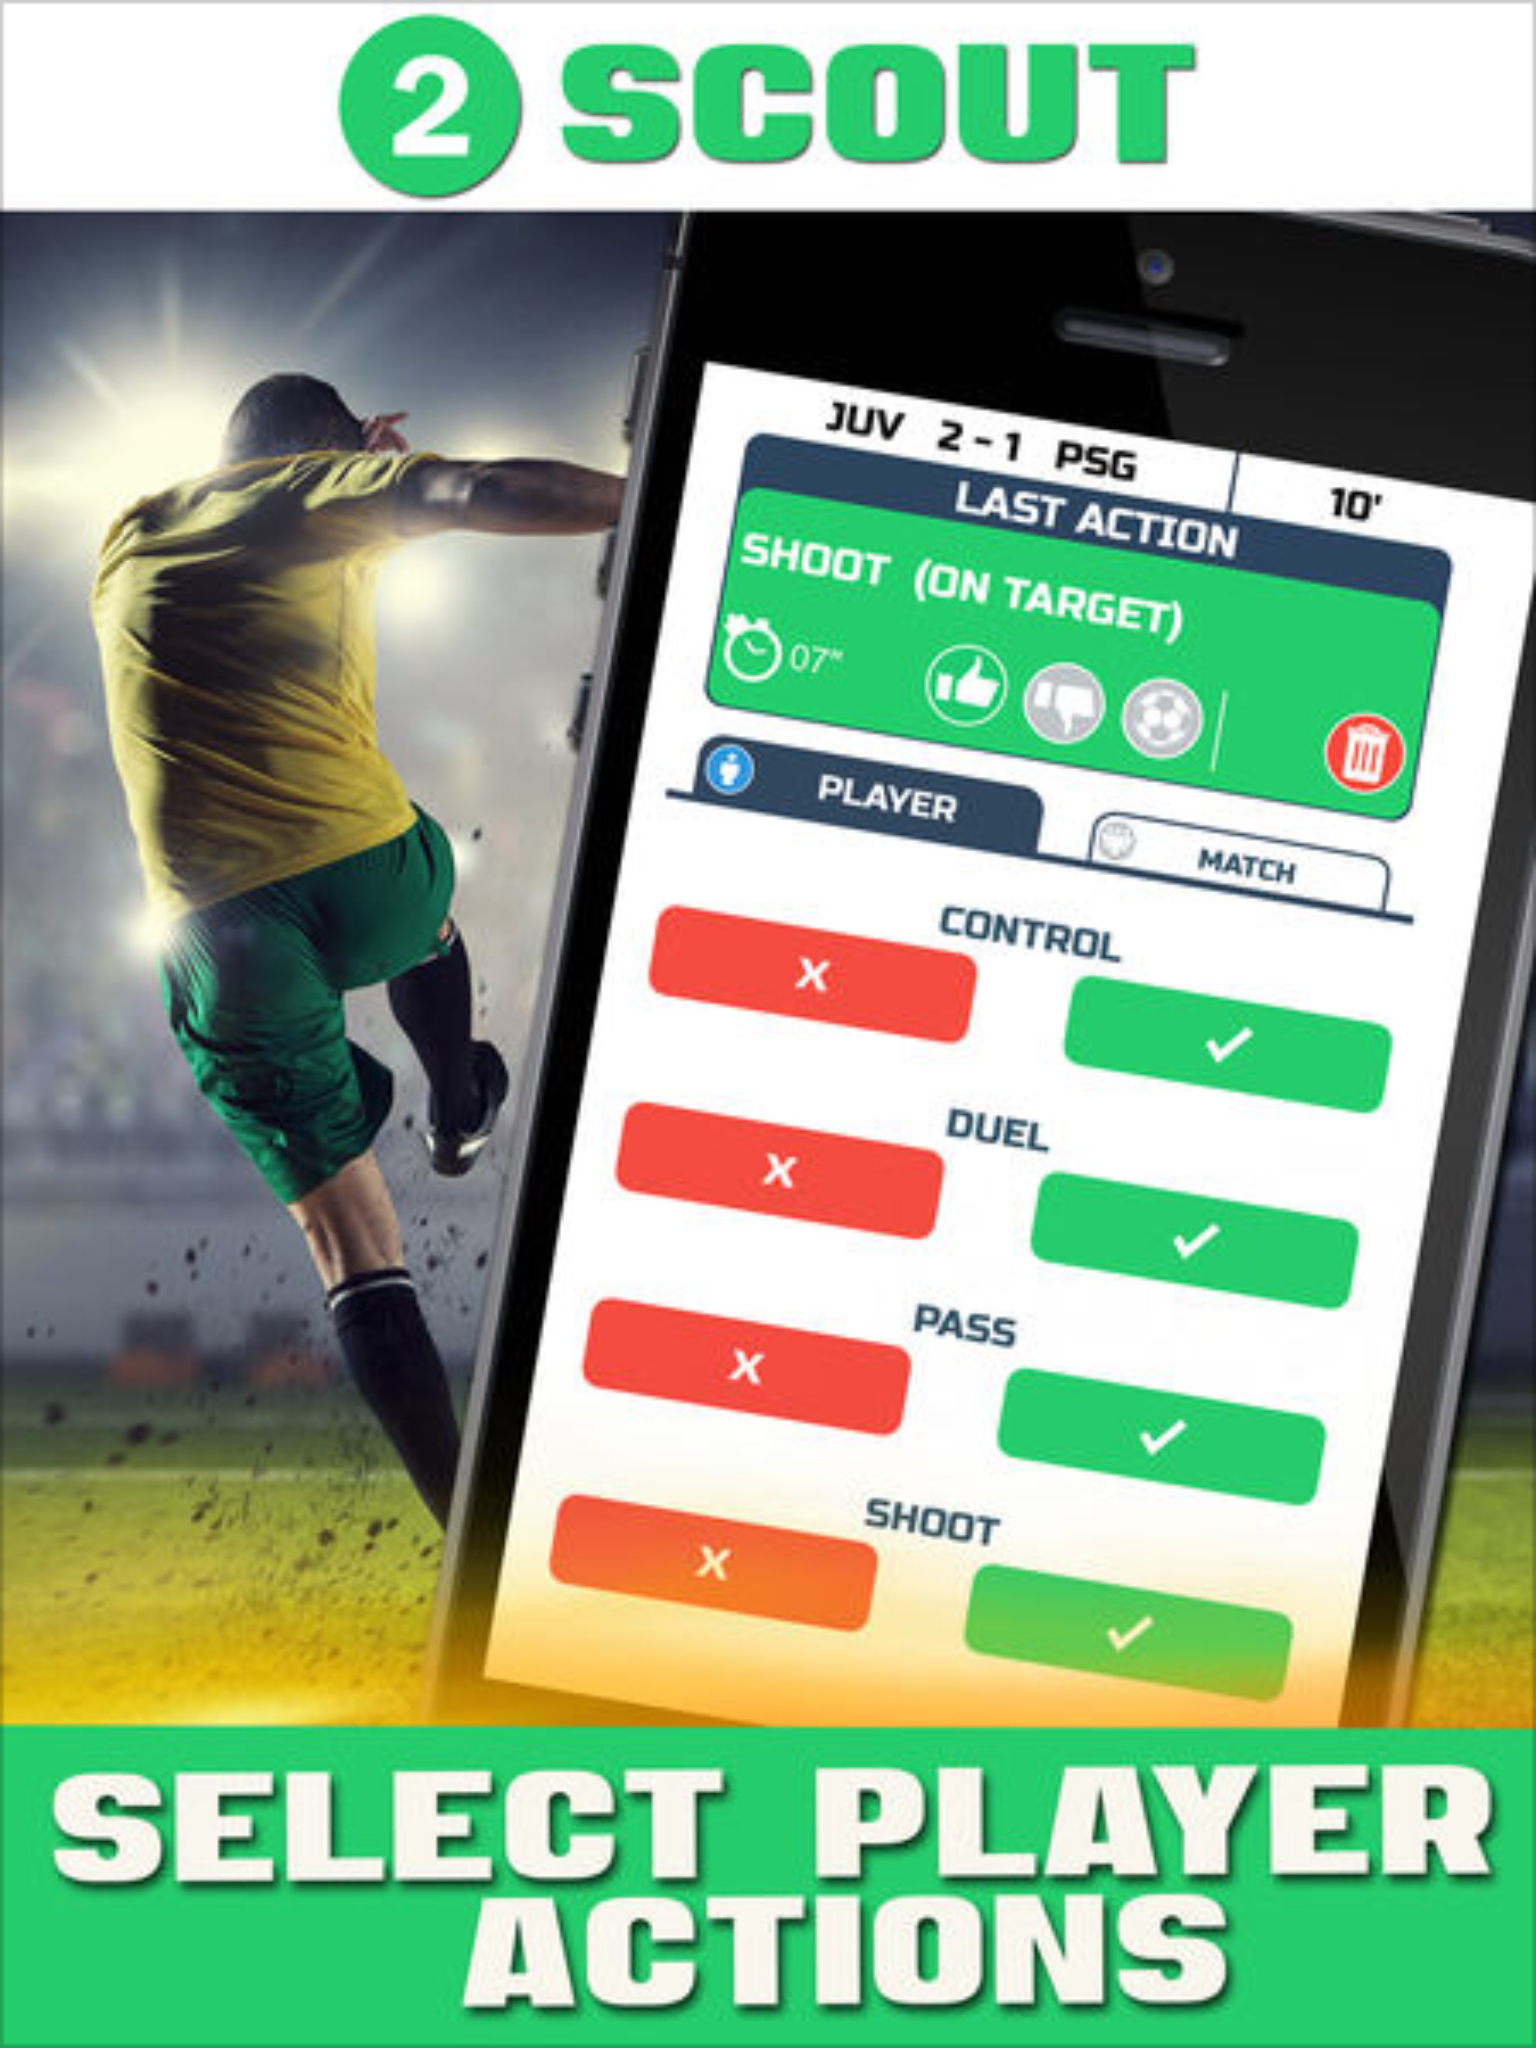 AWESOME FREE SOCCER APP!! Mobile App for soccer scouting